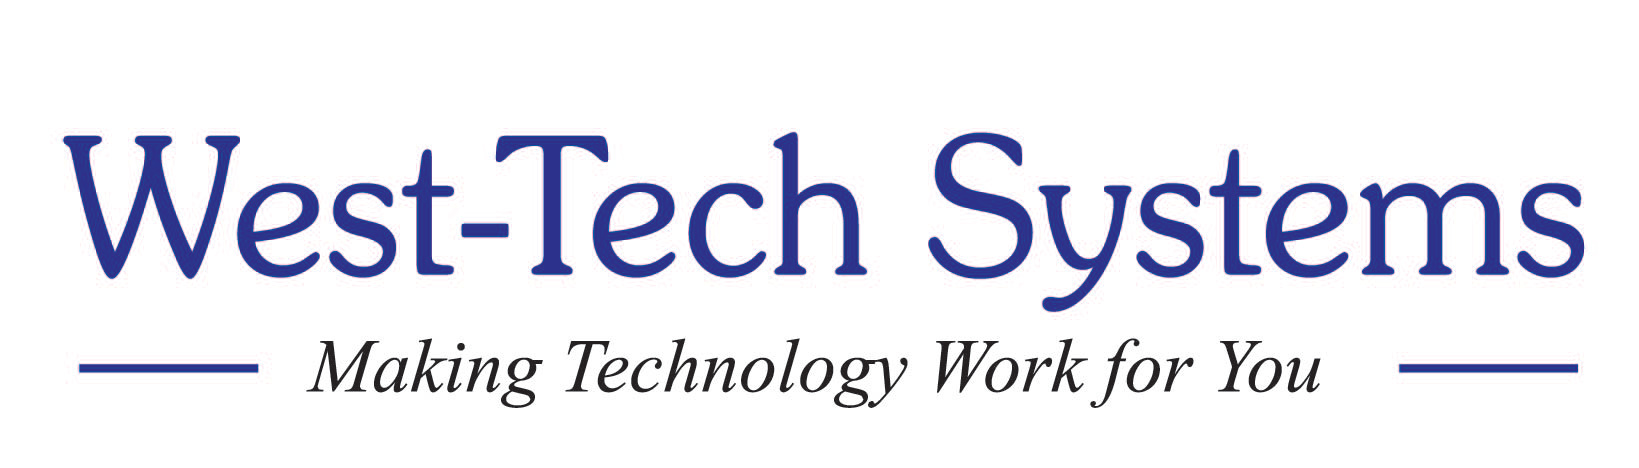 West Tech Systems